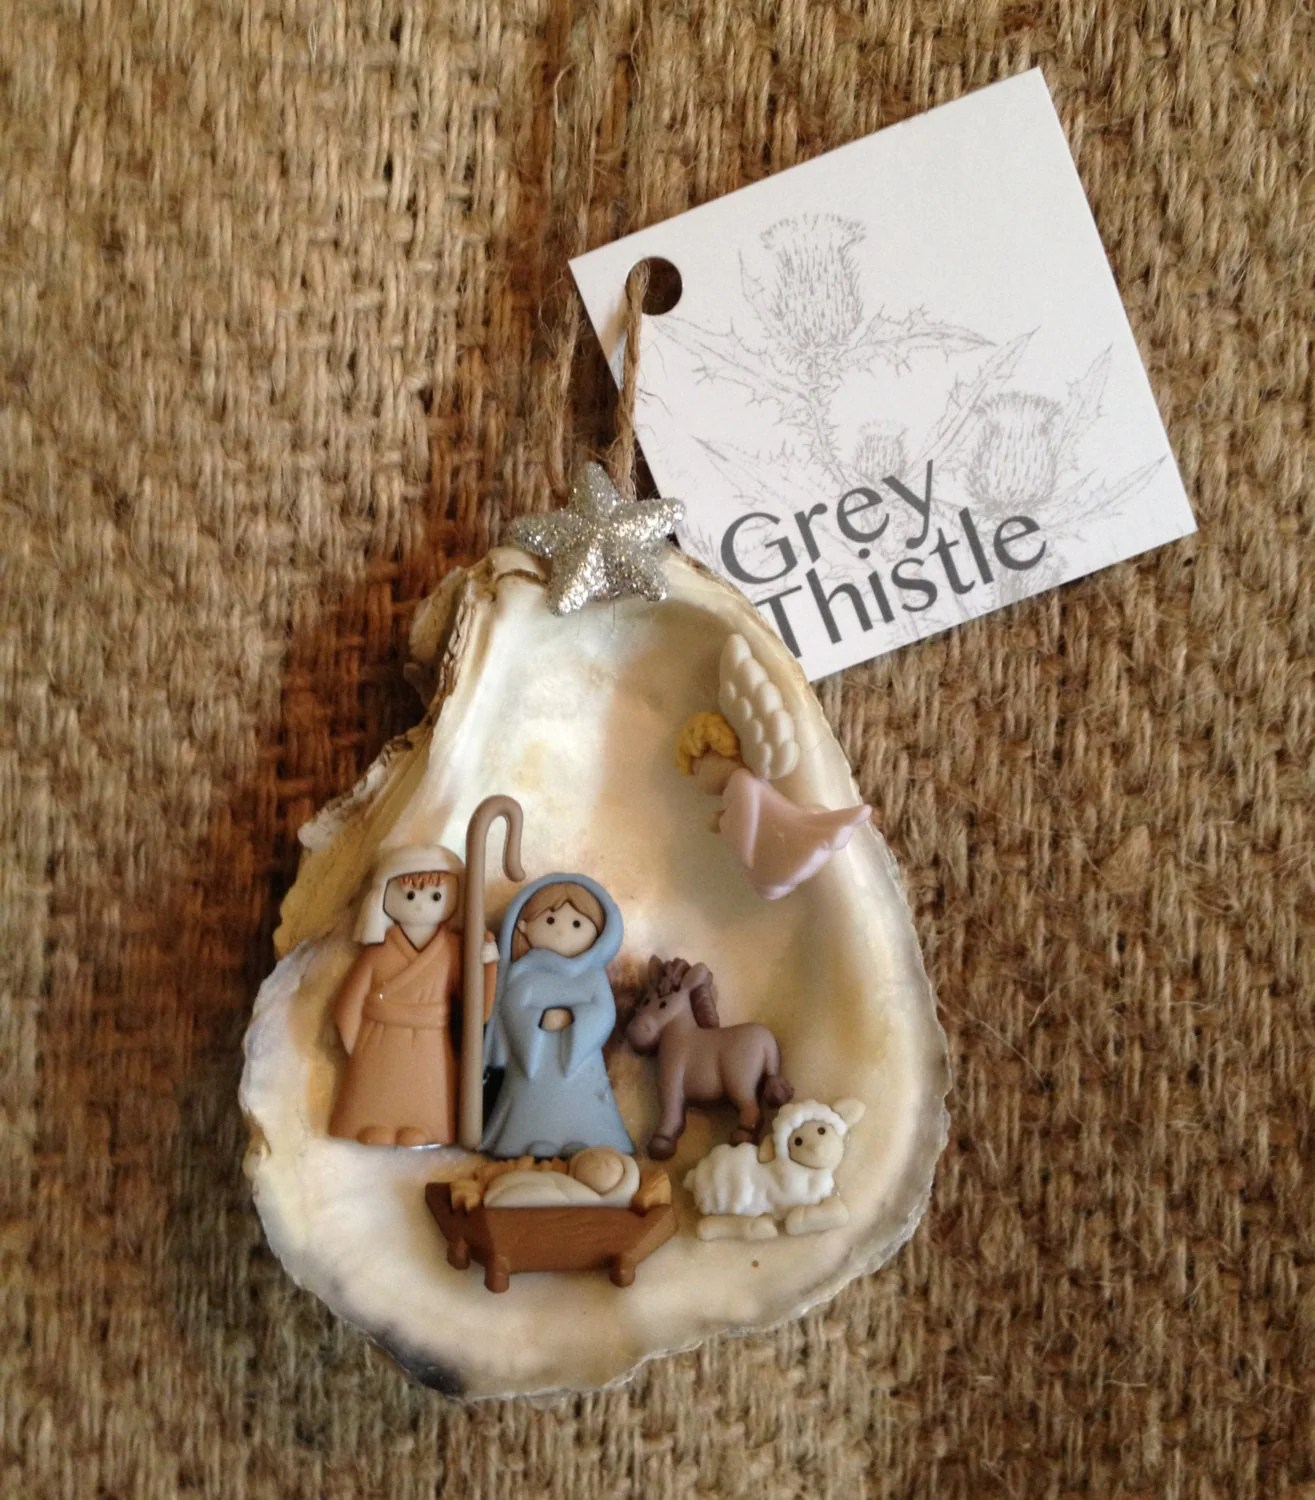 Louisiana Oyster Shell Nativity Ornament By Greythistledesigns